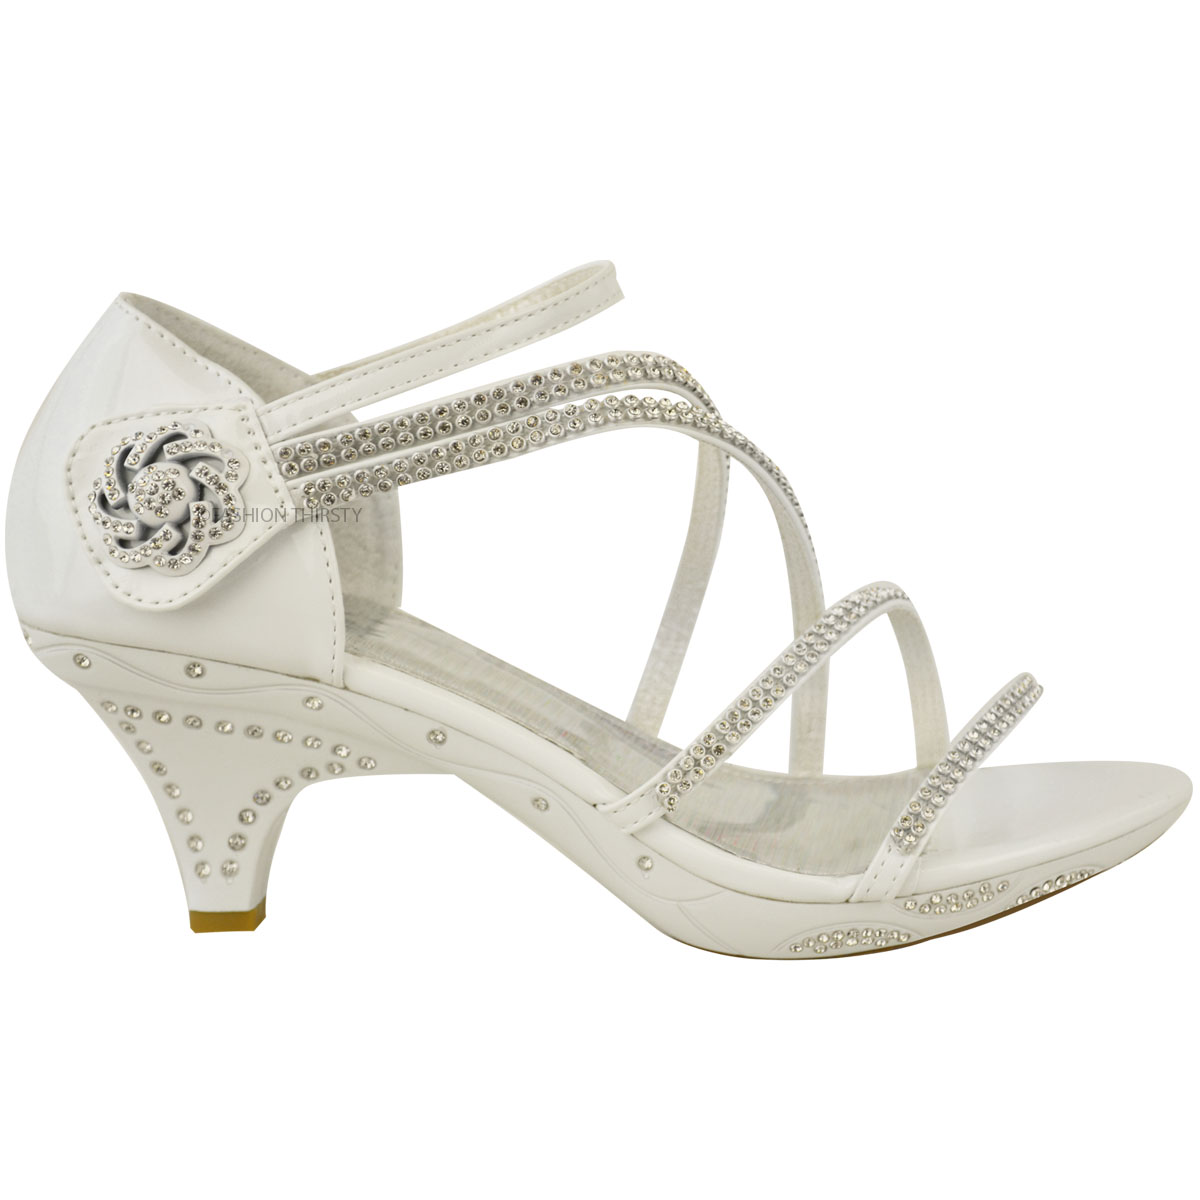 Womens-Ladies-Low-Heel-Diamante-Bridal-Wedding-Sandals-Strappy-Party-Shoes-Size